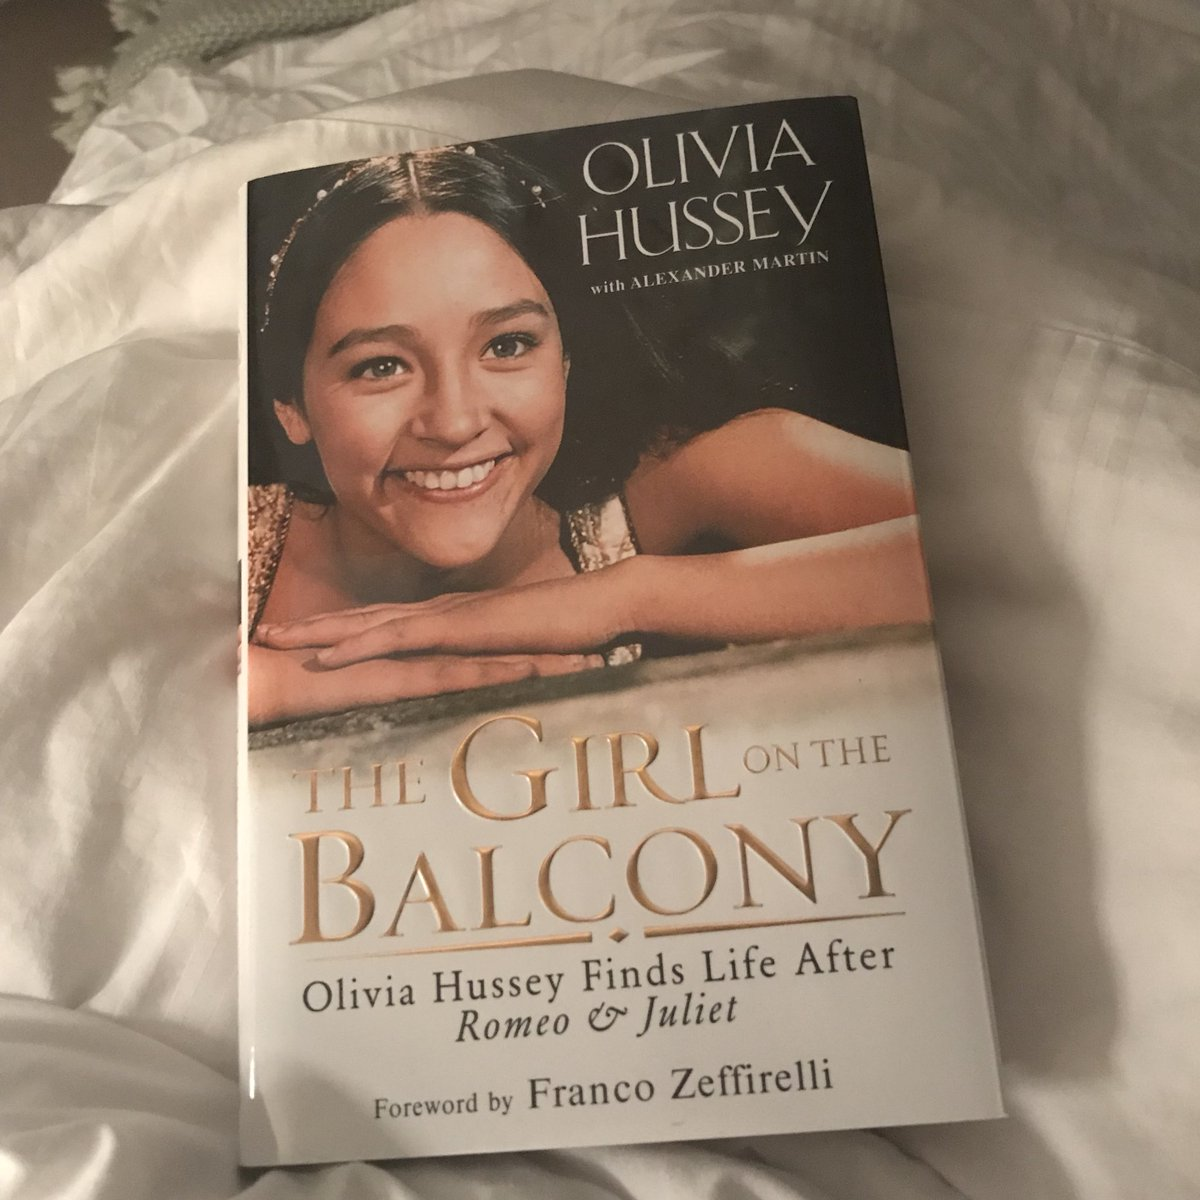 Courtney M Love On Twitter Look What I Get To Start Reading